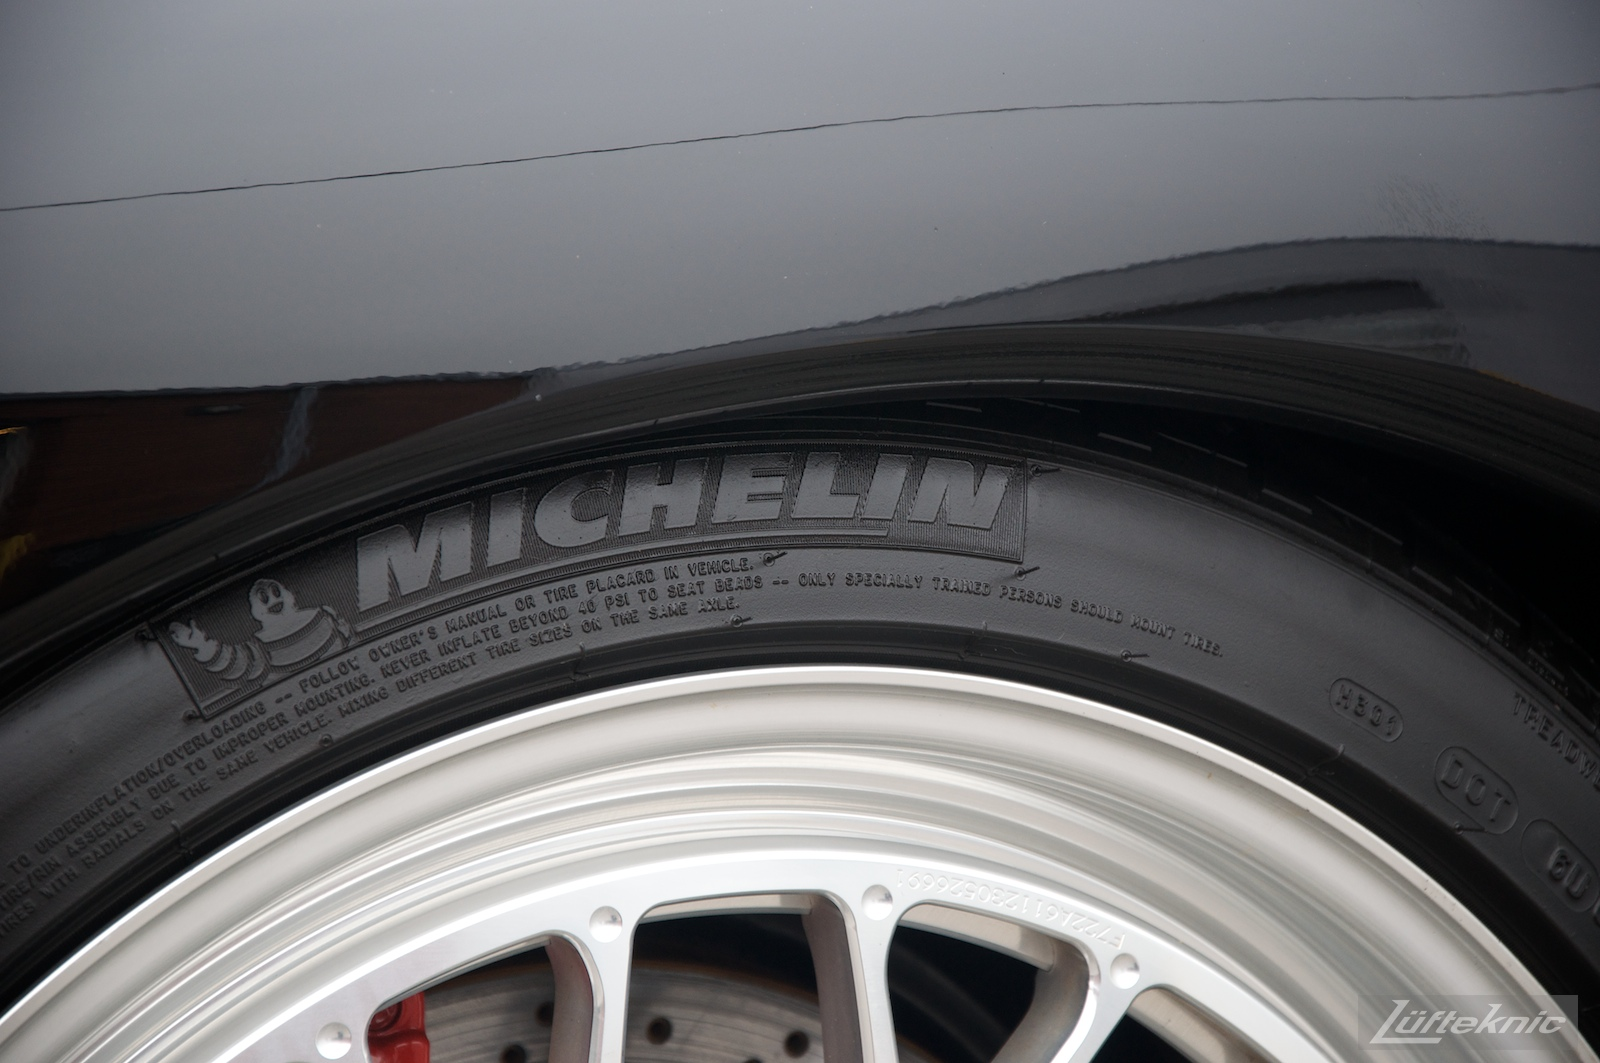 Detail shot of the Michelin Pilot tire and Fikse wheel on a black 993 Porsche Turbo.